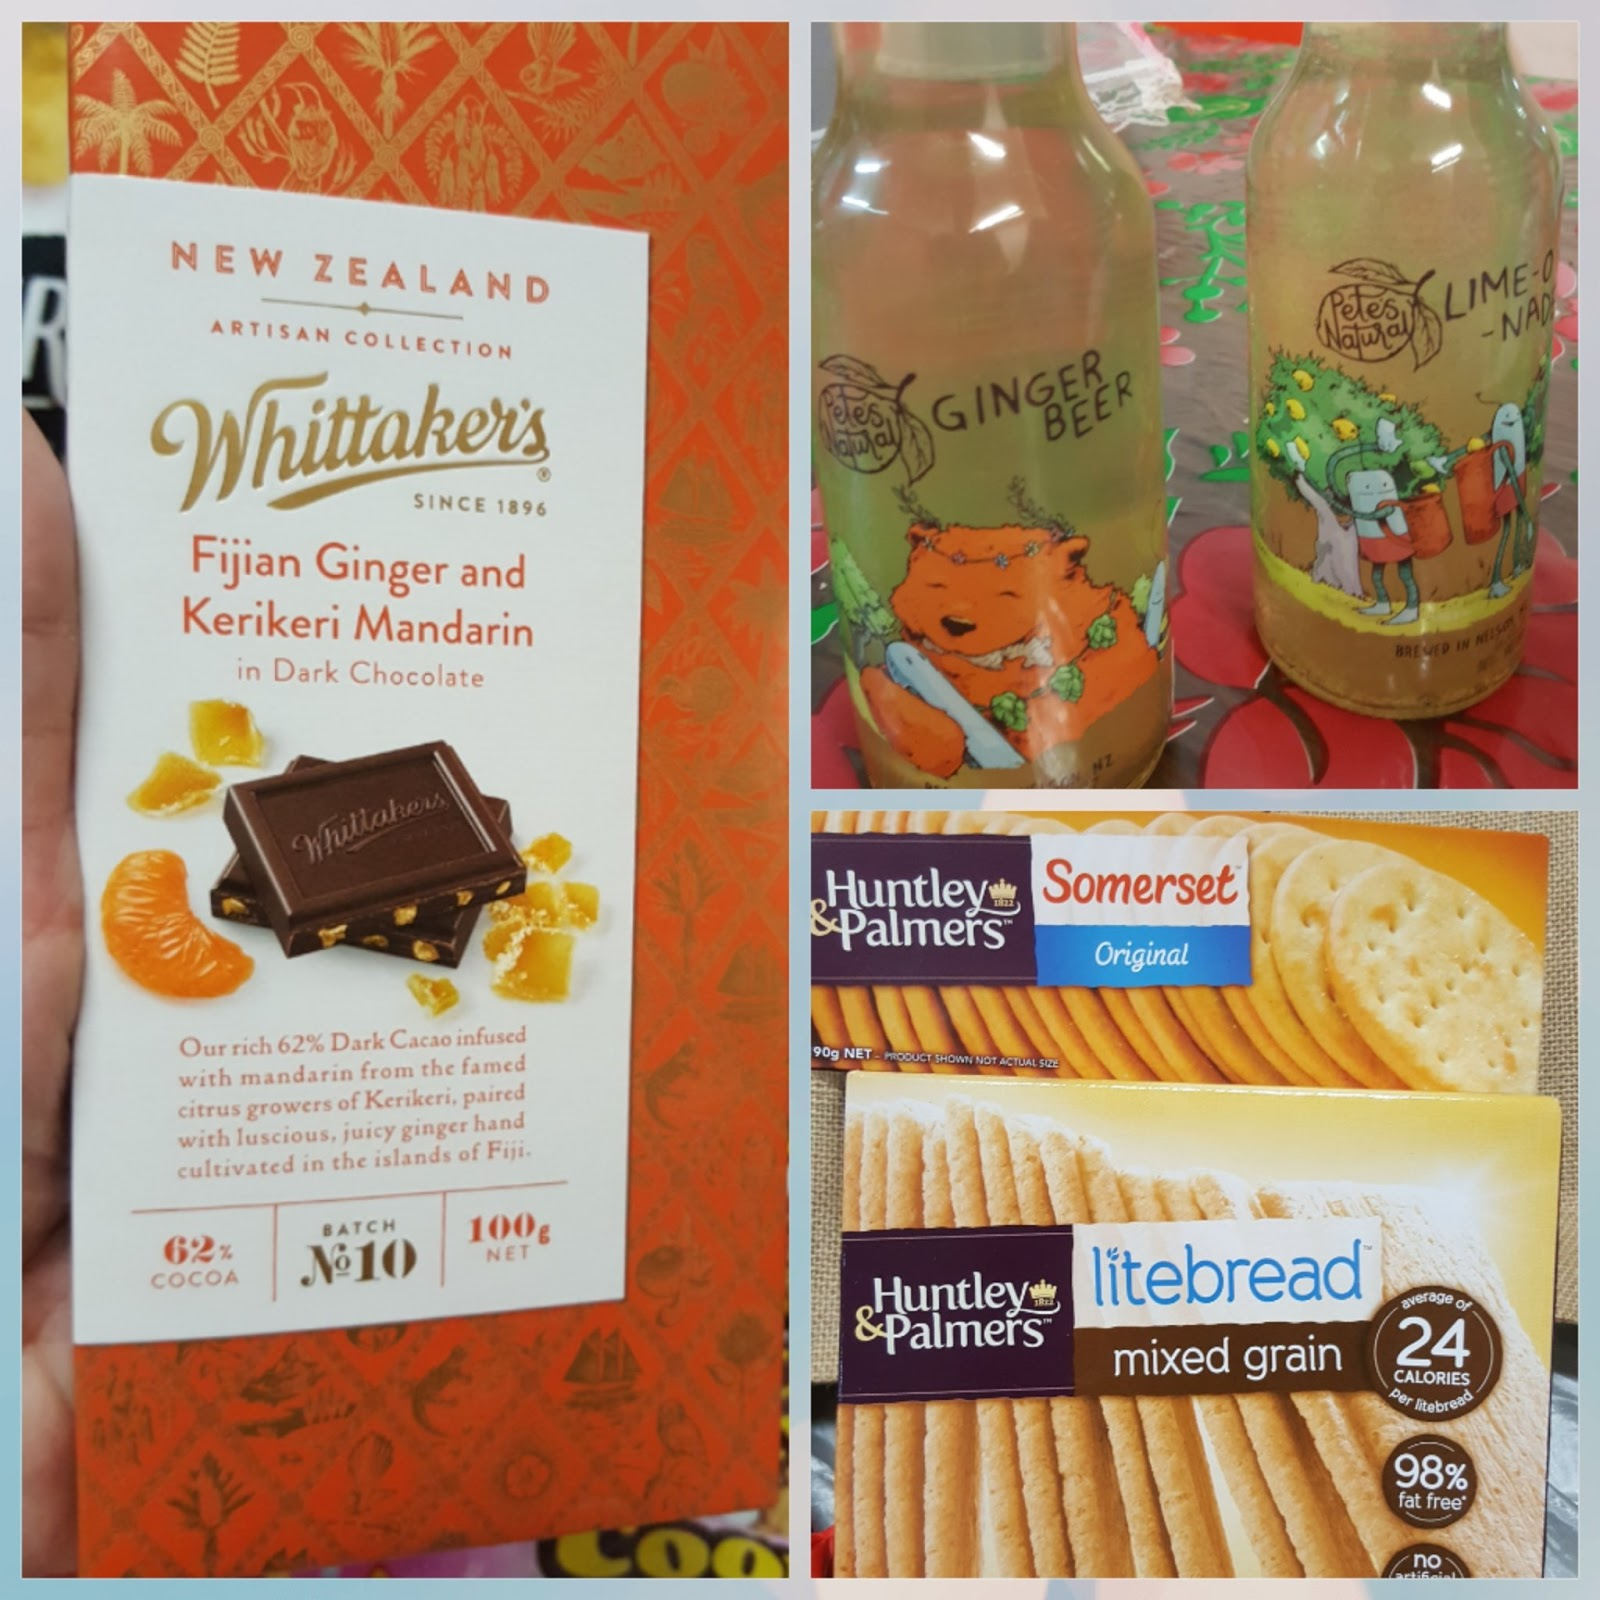 Namesherry Taste Quality At Jaya Grocers New Zealand Food Fair Tcash Lebaran April Skin Magic Snow Cushion Top Chocolates And Biscuits Whittakers Founded In 1896 By James Henry Whittaker Zealands Primary Chocolate Brand Sources For